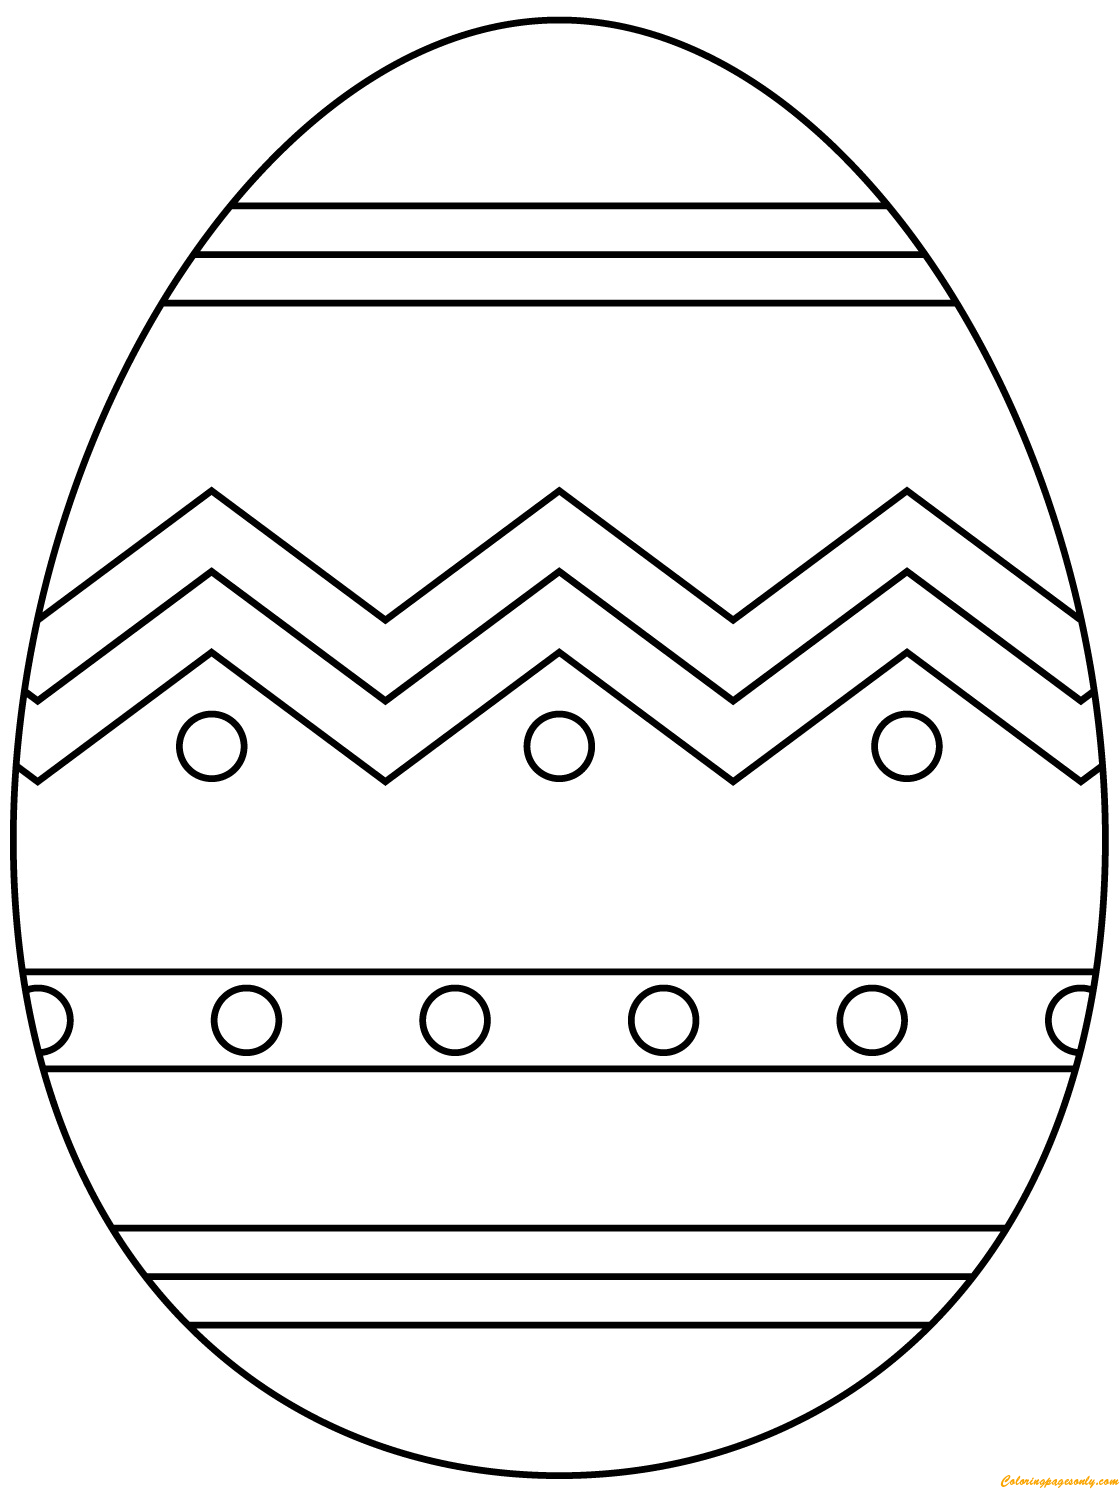 egg for colouring serving fried egg for breakfast coloring pages download egg for colouring